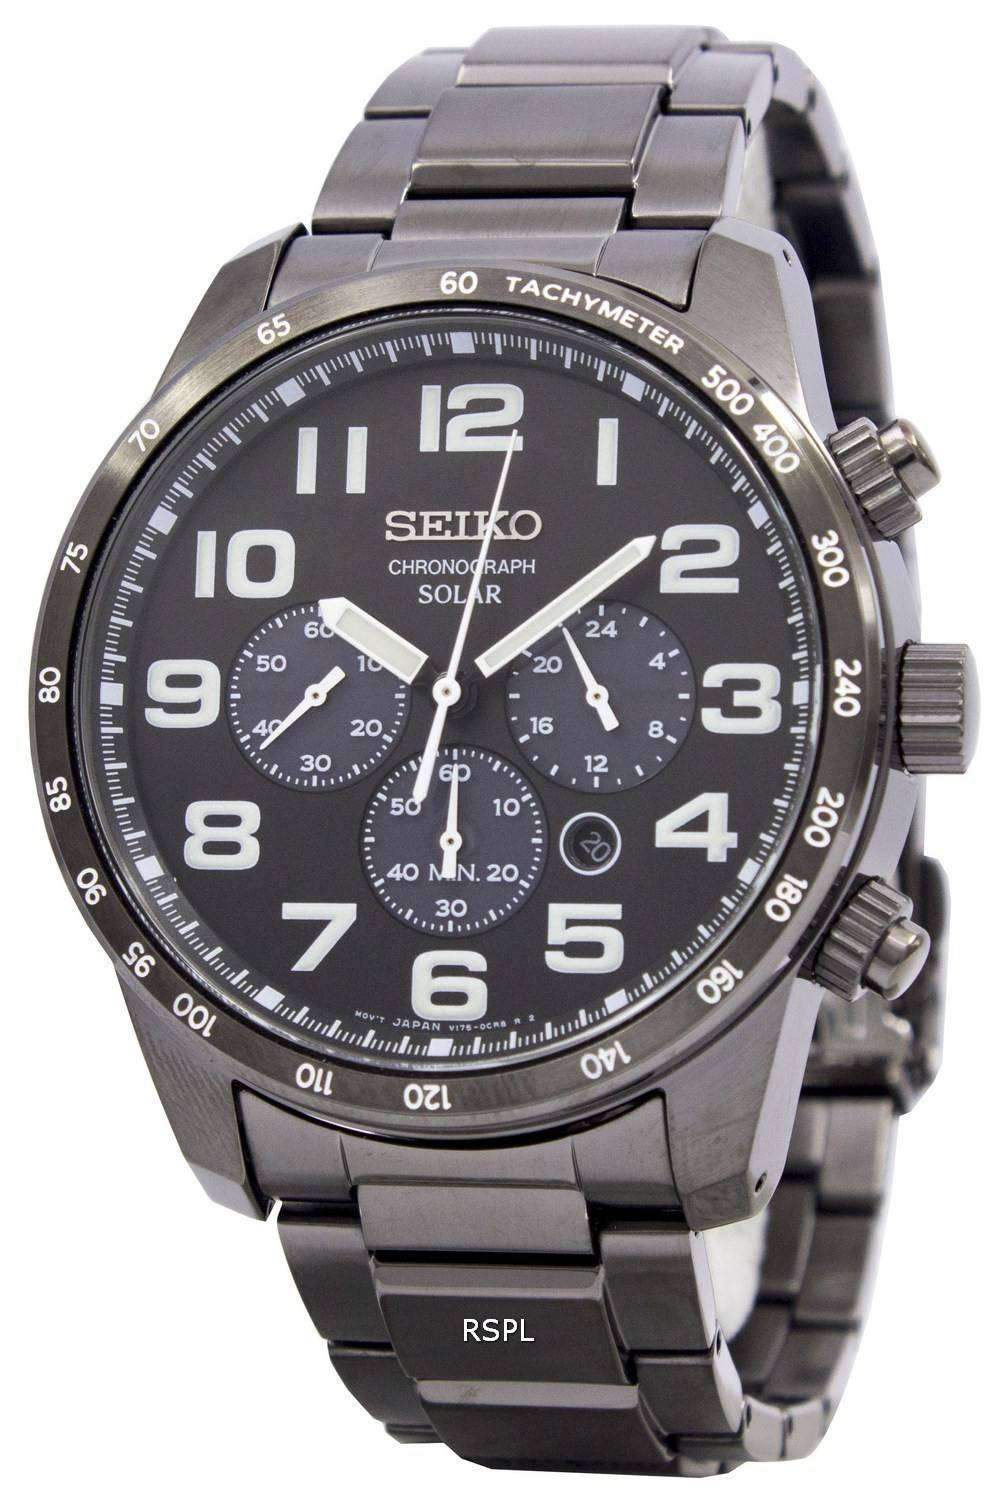 Seiko solar chronograph ssc231 ssc231p1 ssc231p mens watch downunderwatches for Seiko solar